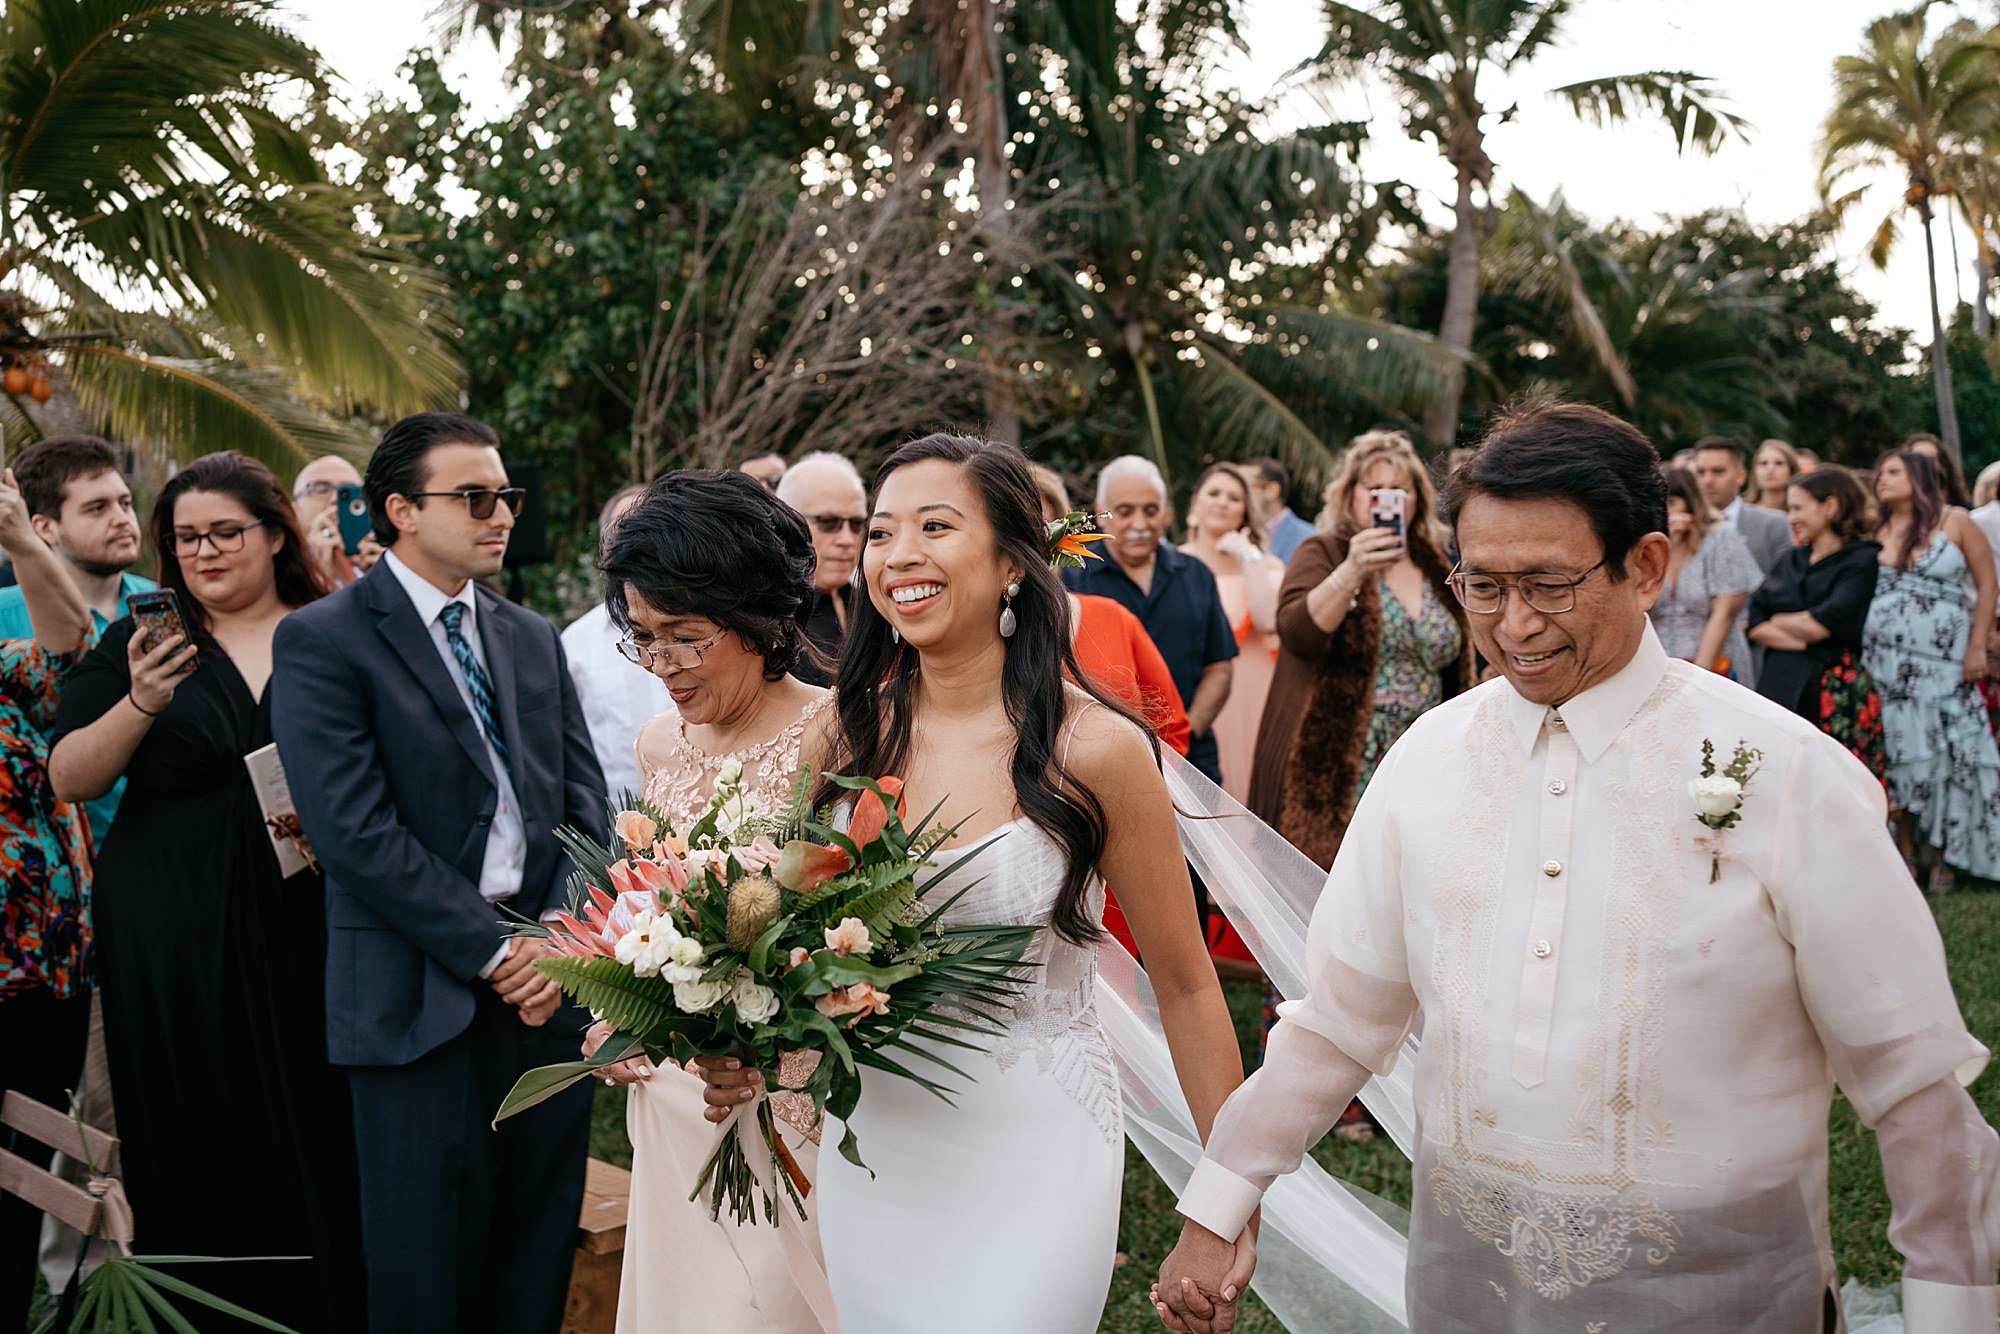 natural wedding photography miami the kampong 0451 1